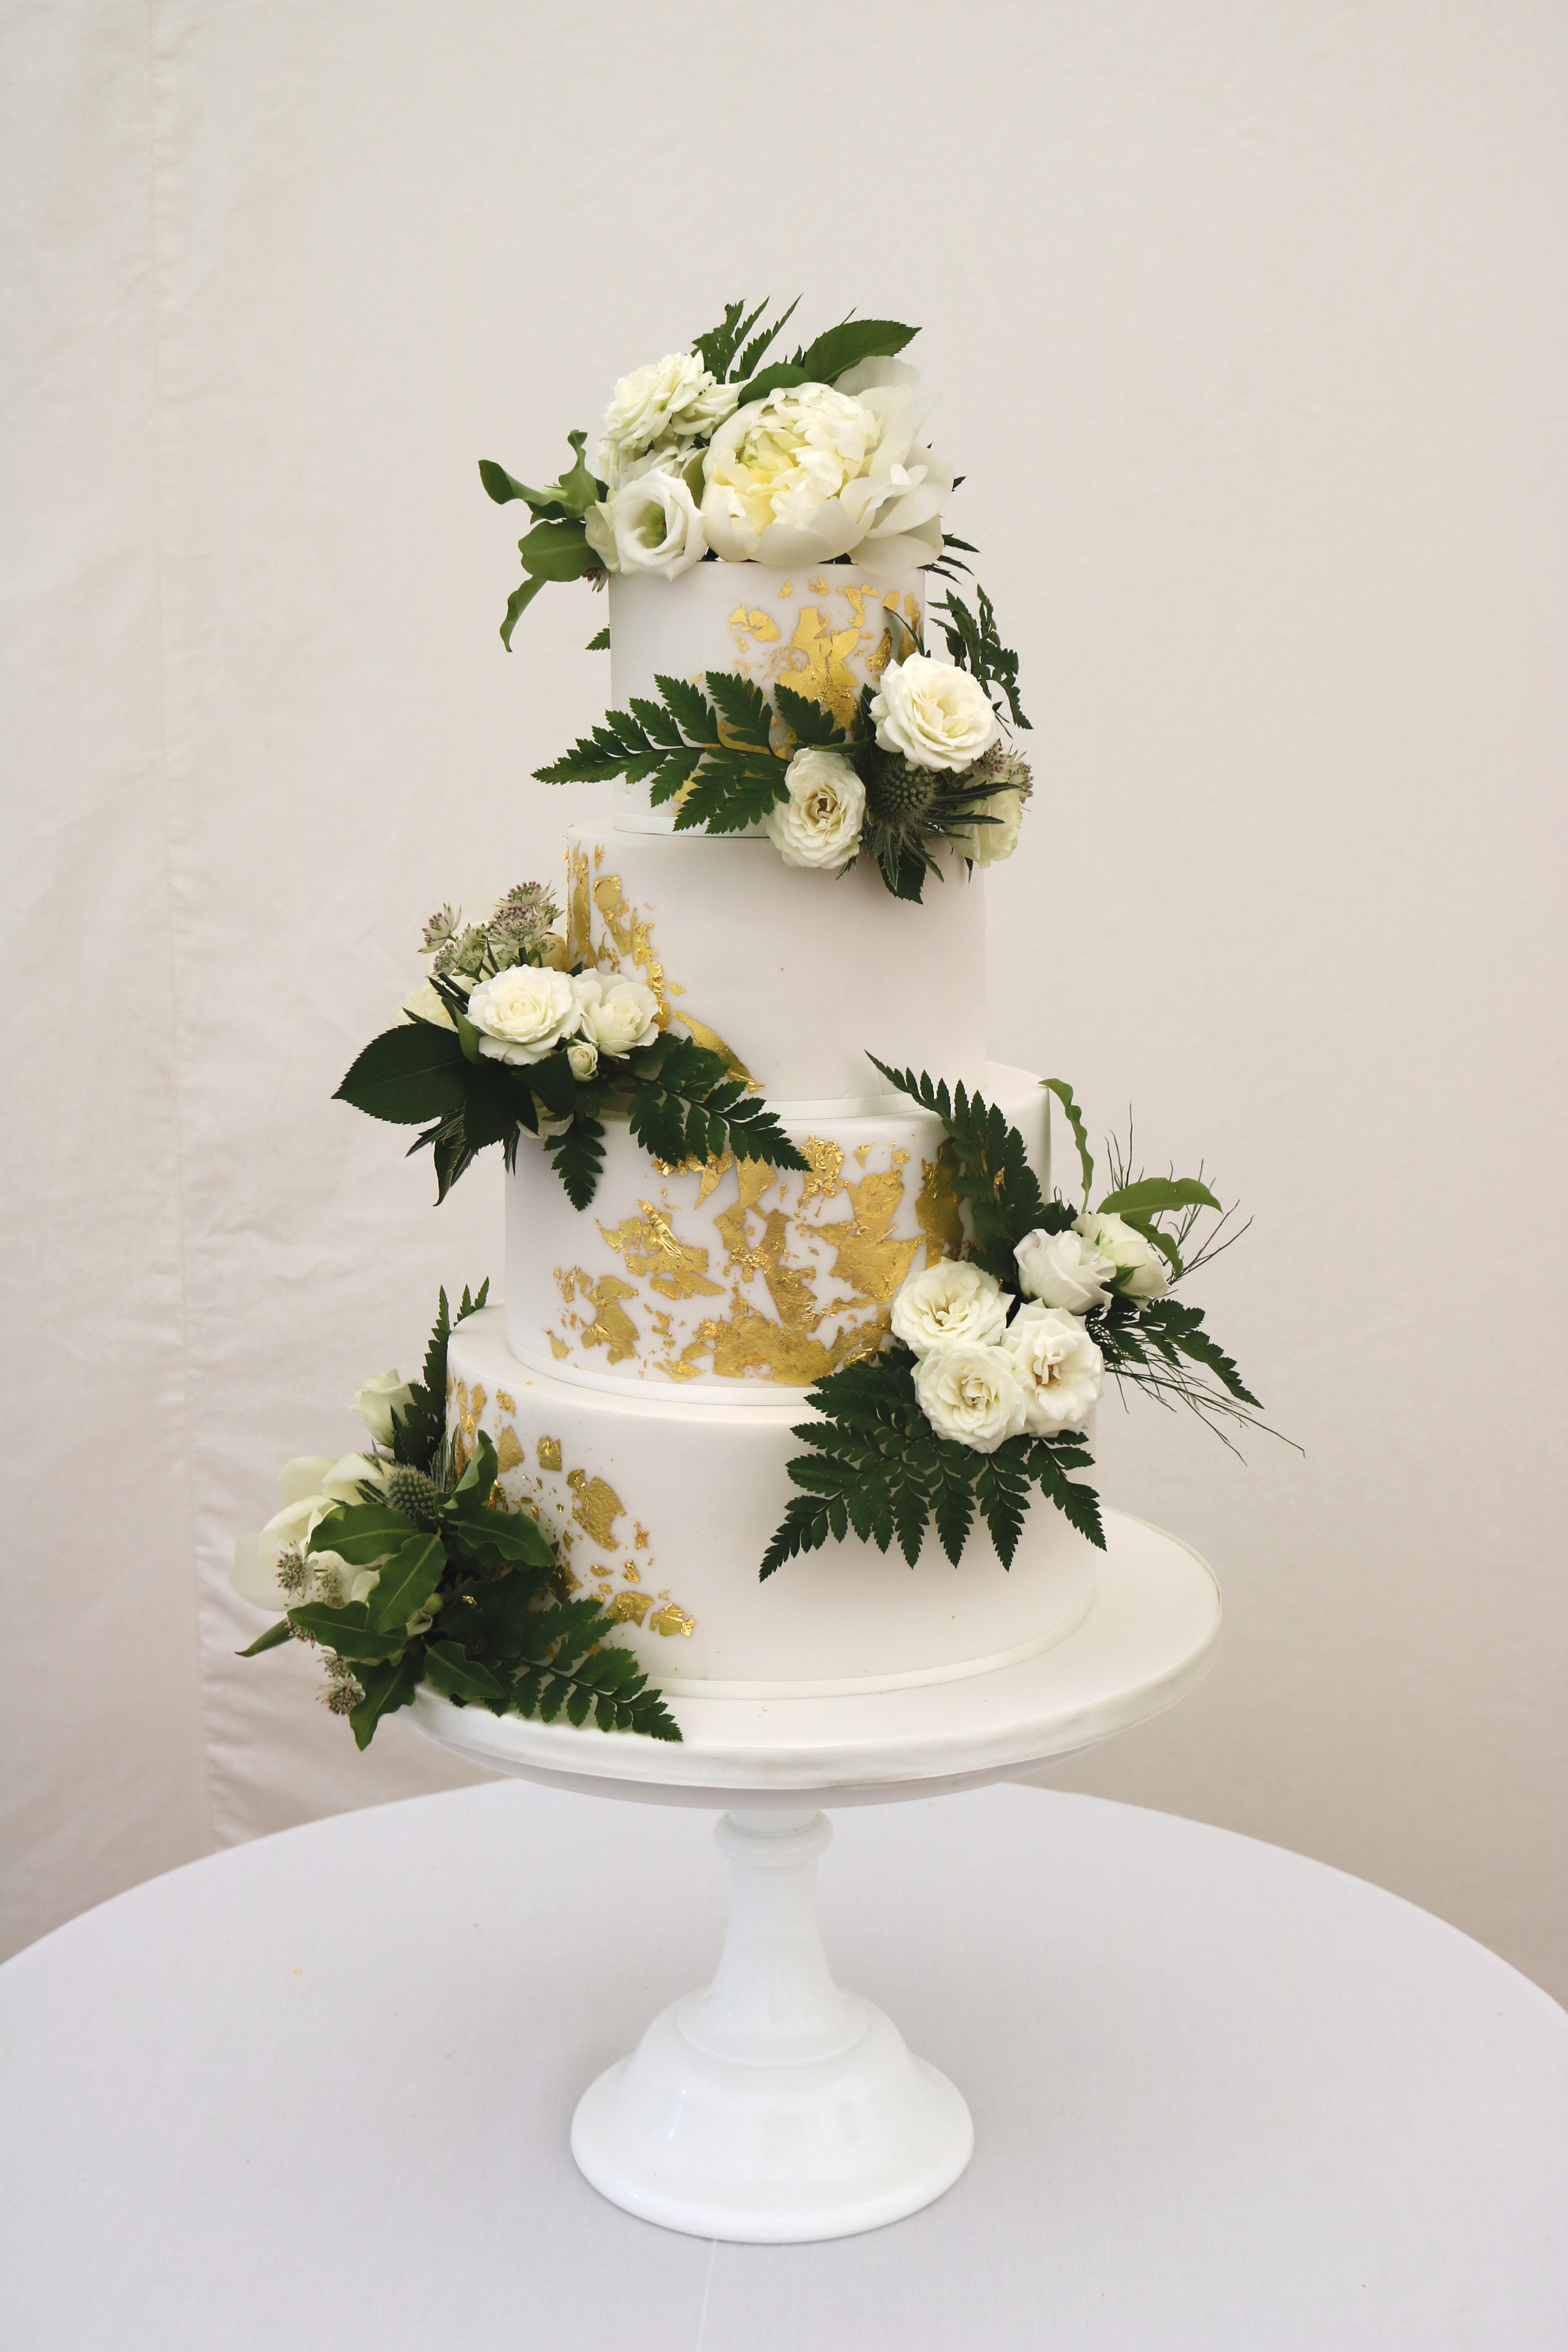 Cake with gold leaf flakes and fresh green and white flowers